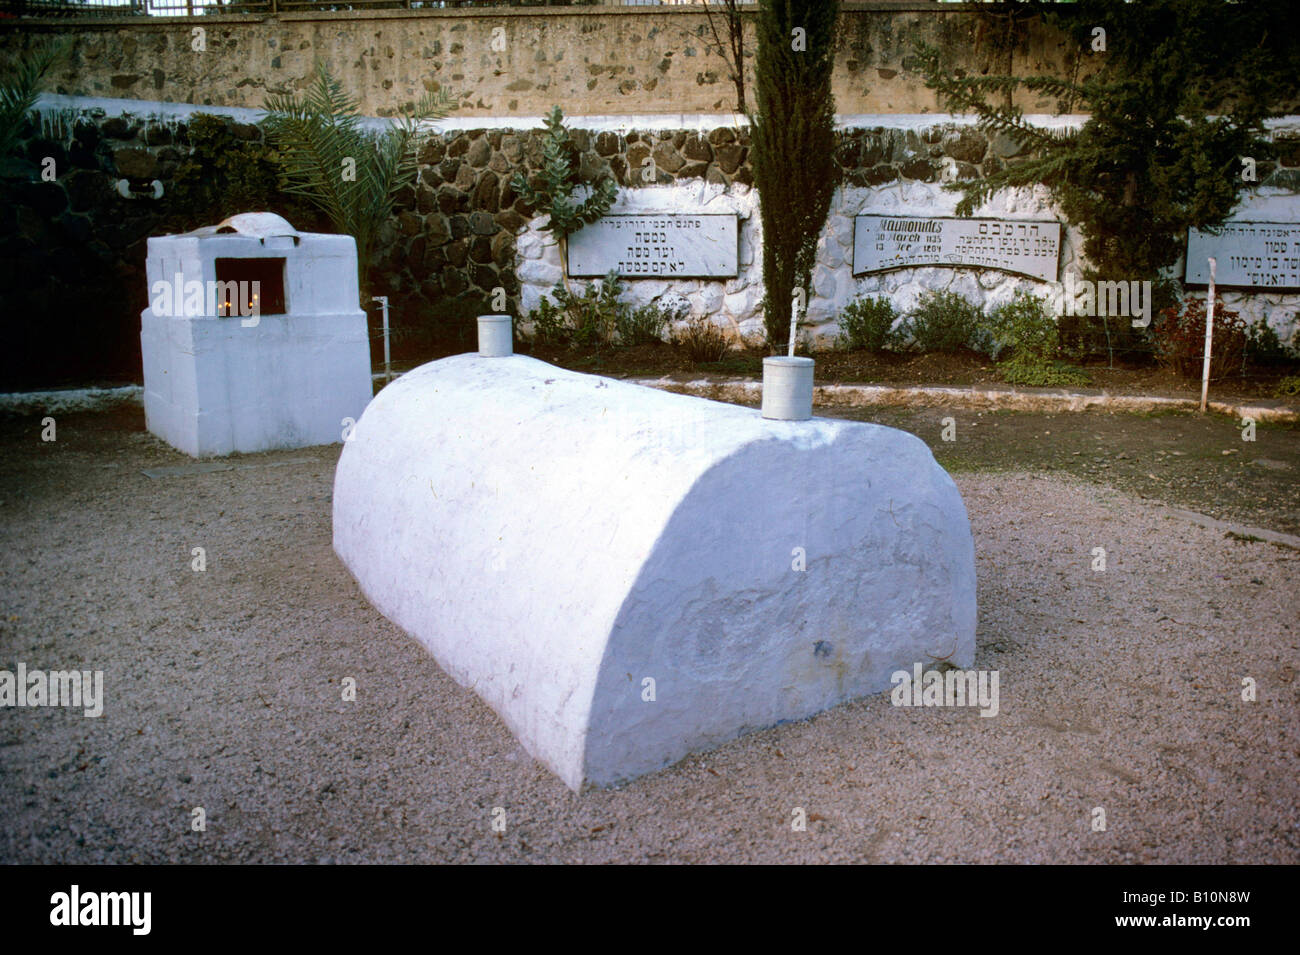 Tomb of Maimonides 1135 1204 Israel  Copyrithg: Ancient Art Architecture Collection Ltd - Stock Image